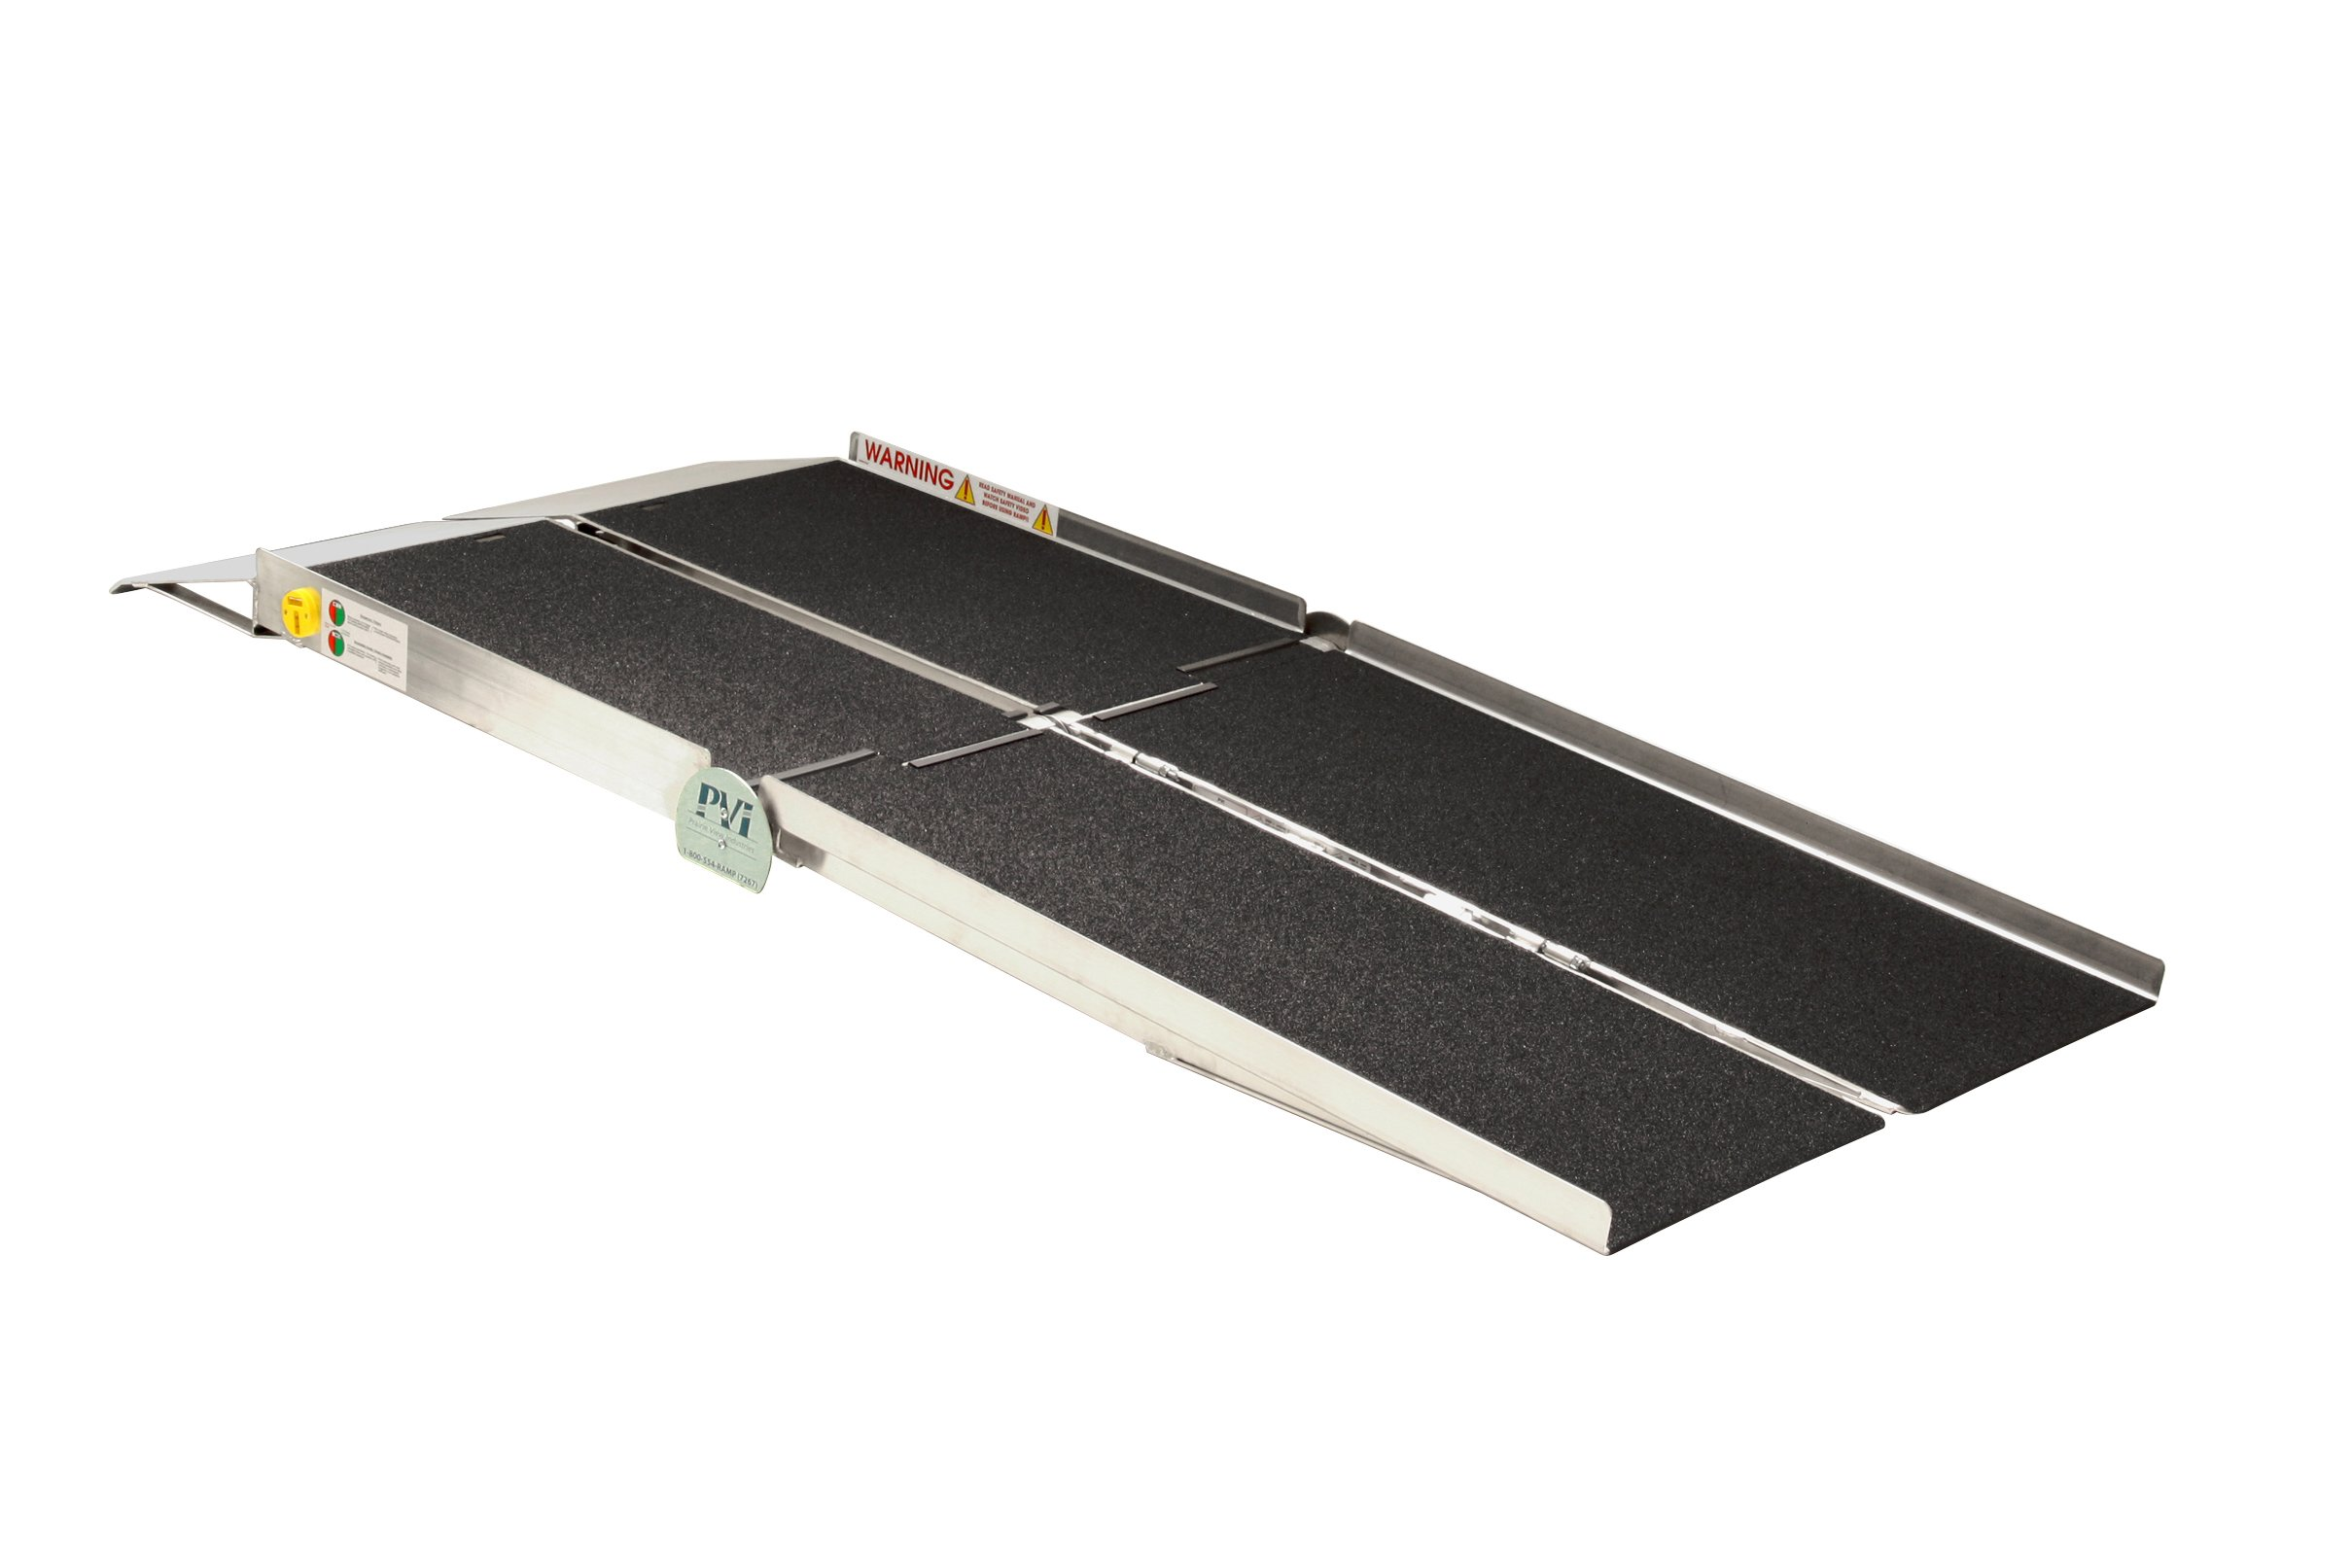 Prairie View Industries UTW1030 Portable Multi-fold Ramp with Extended Lip, 10 ft x 30 in